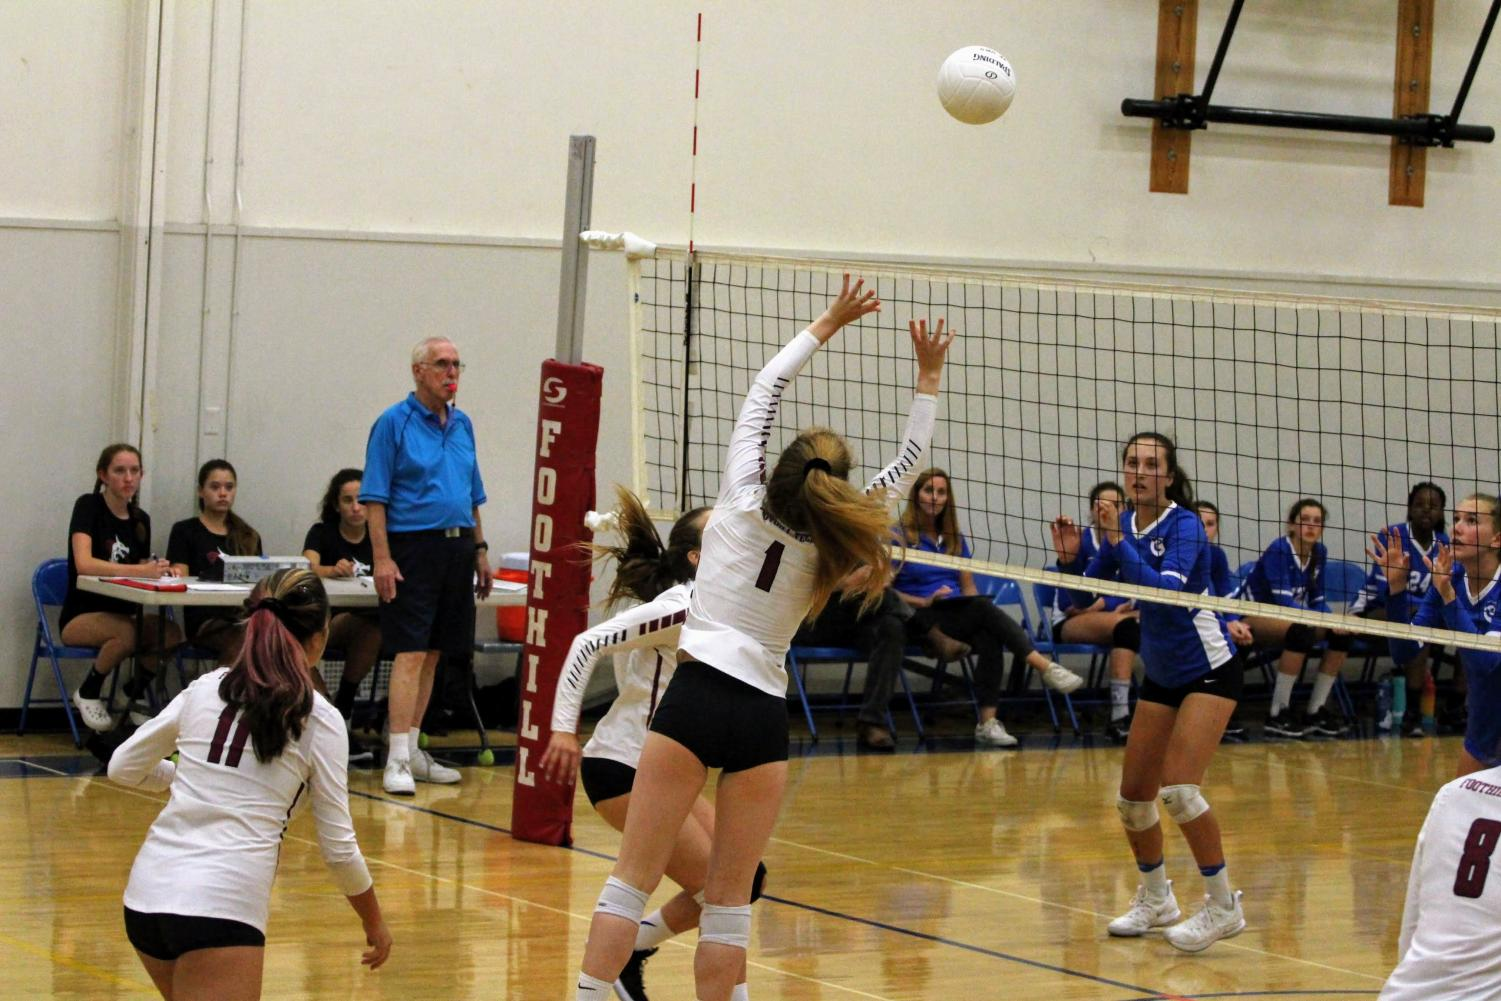 Fae Armstrong '21 with a strong set